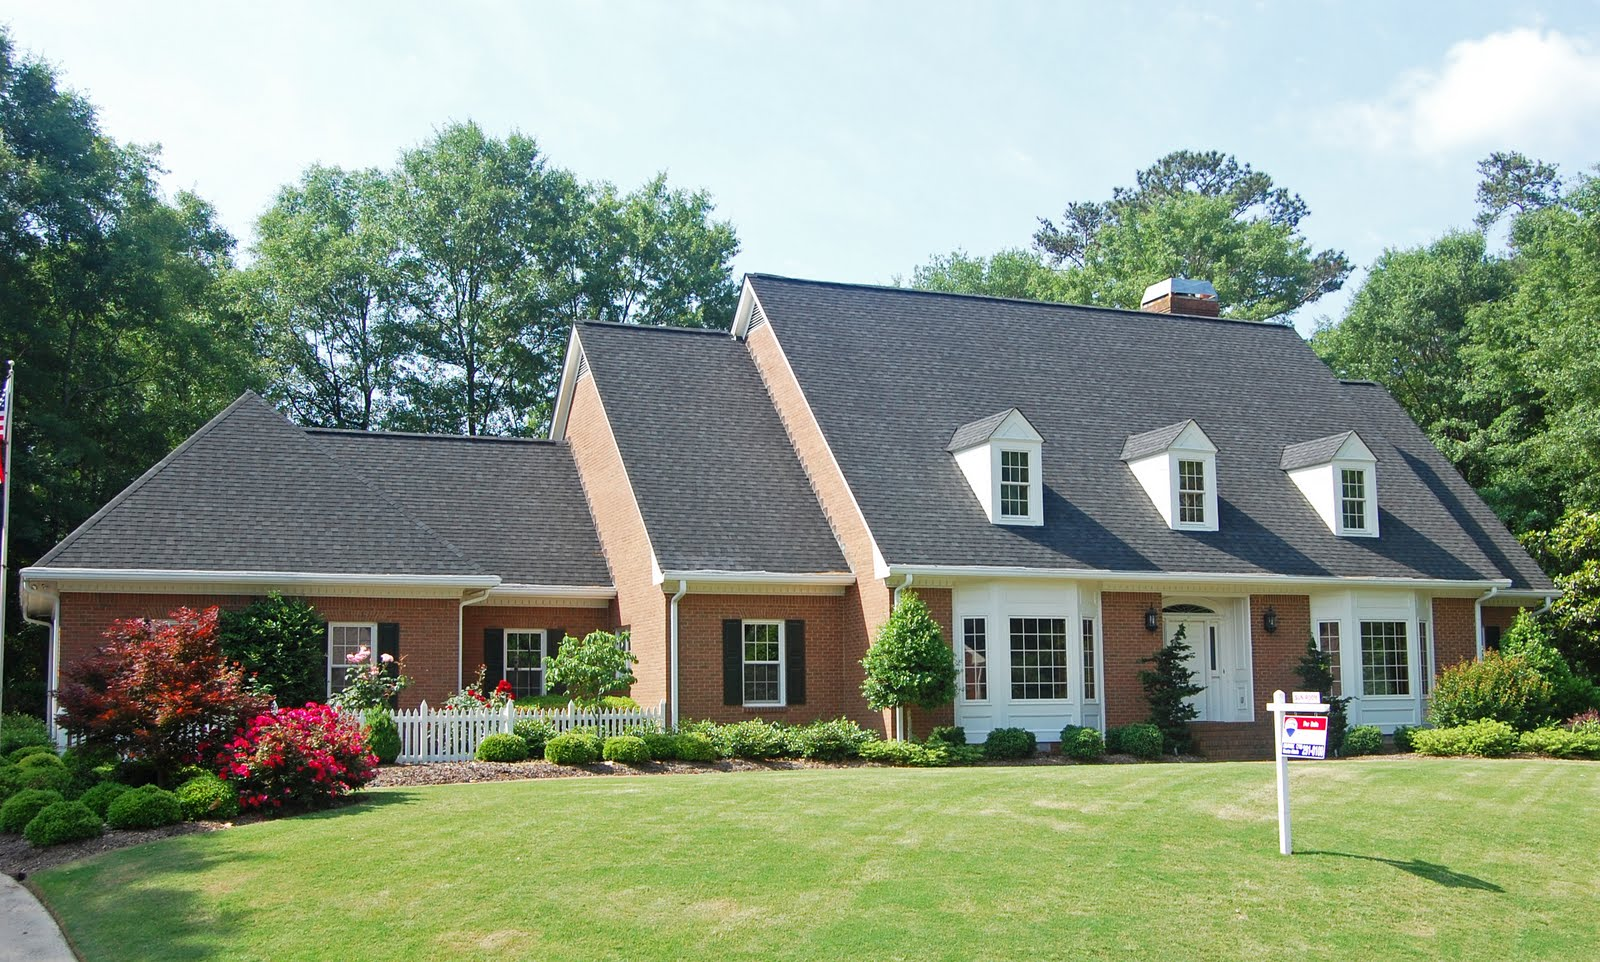 Johns creek homes and advice all brick best home in for All brick homes